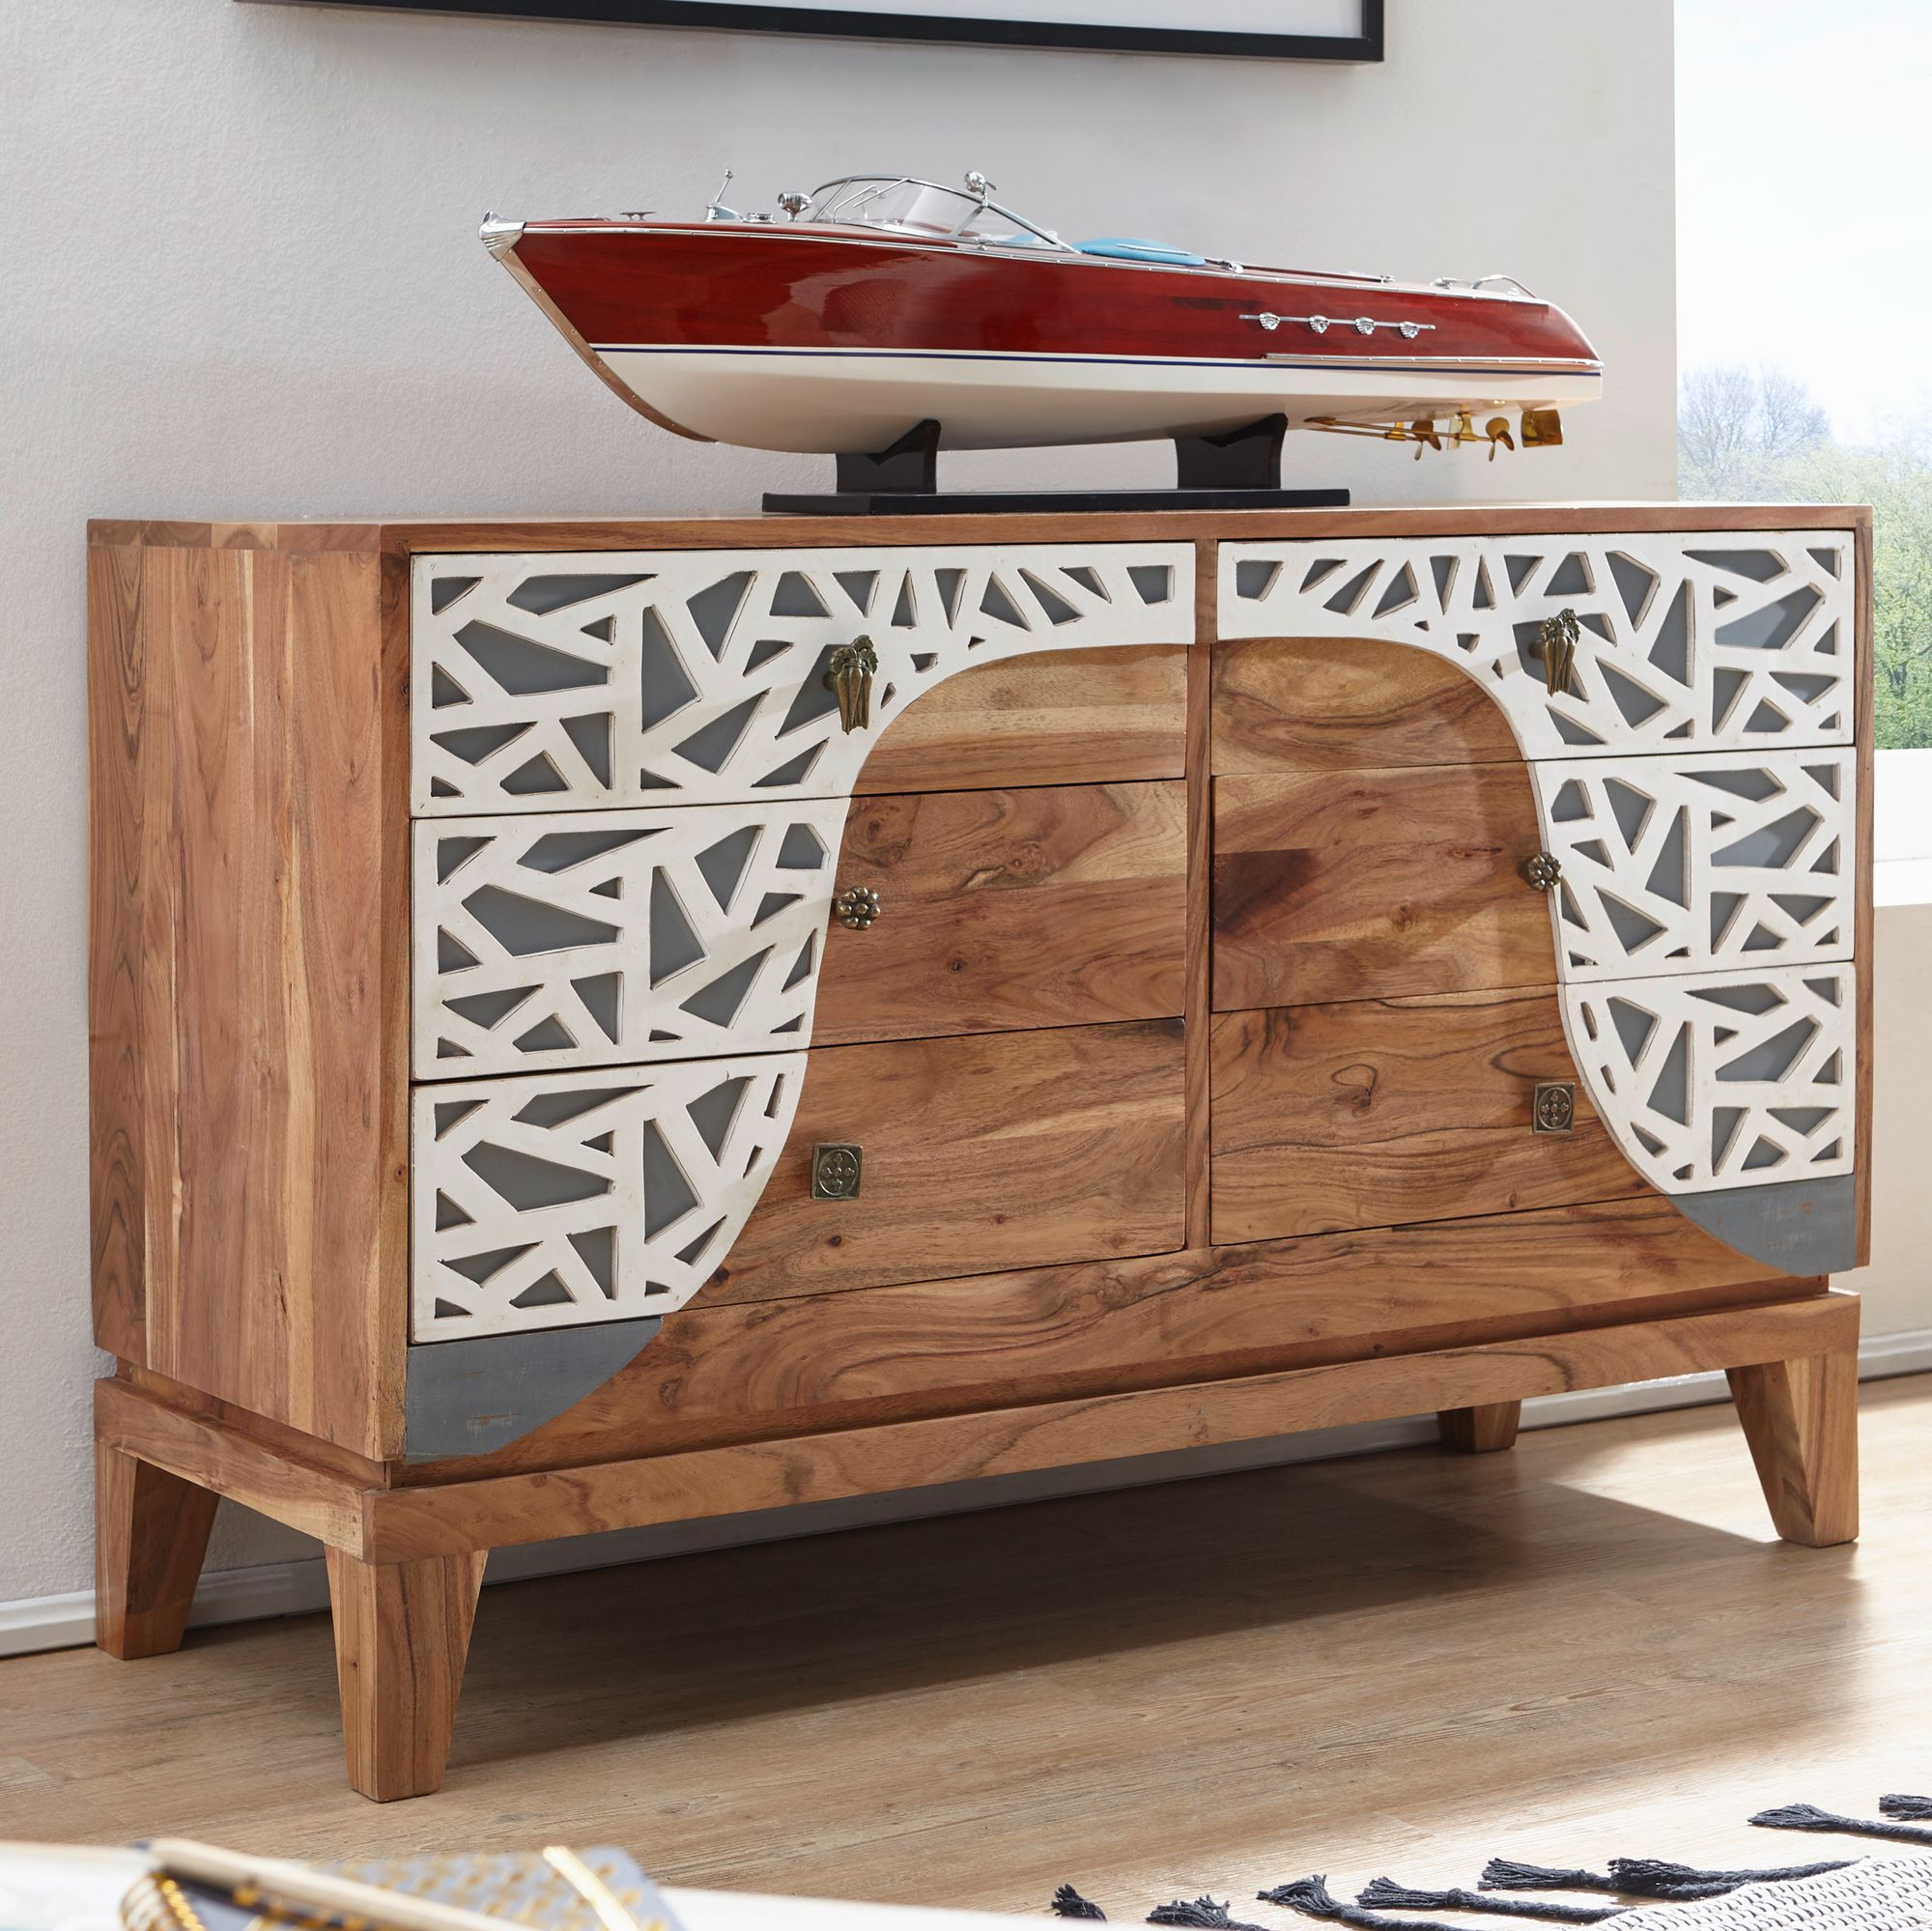 finebuy sideboard anja 115x75x45 cm akazie massivholz landhaus holzschrank kleiner schrank. Black Bedroom Furniture Sets. Home Design Ideas